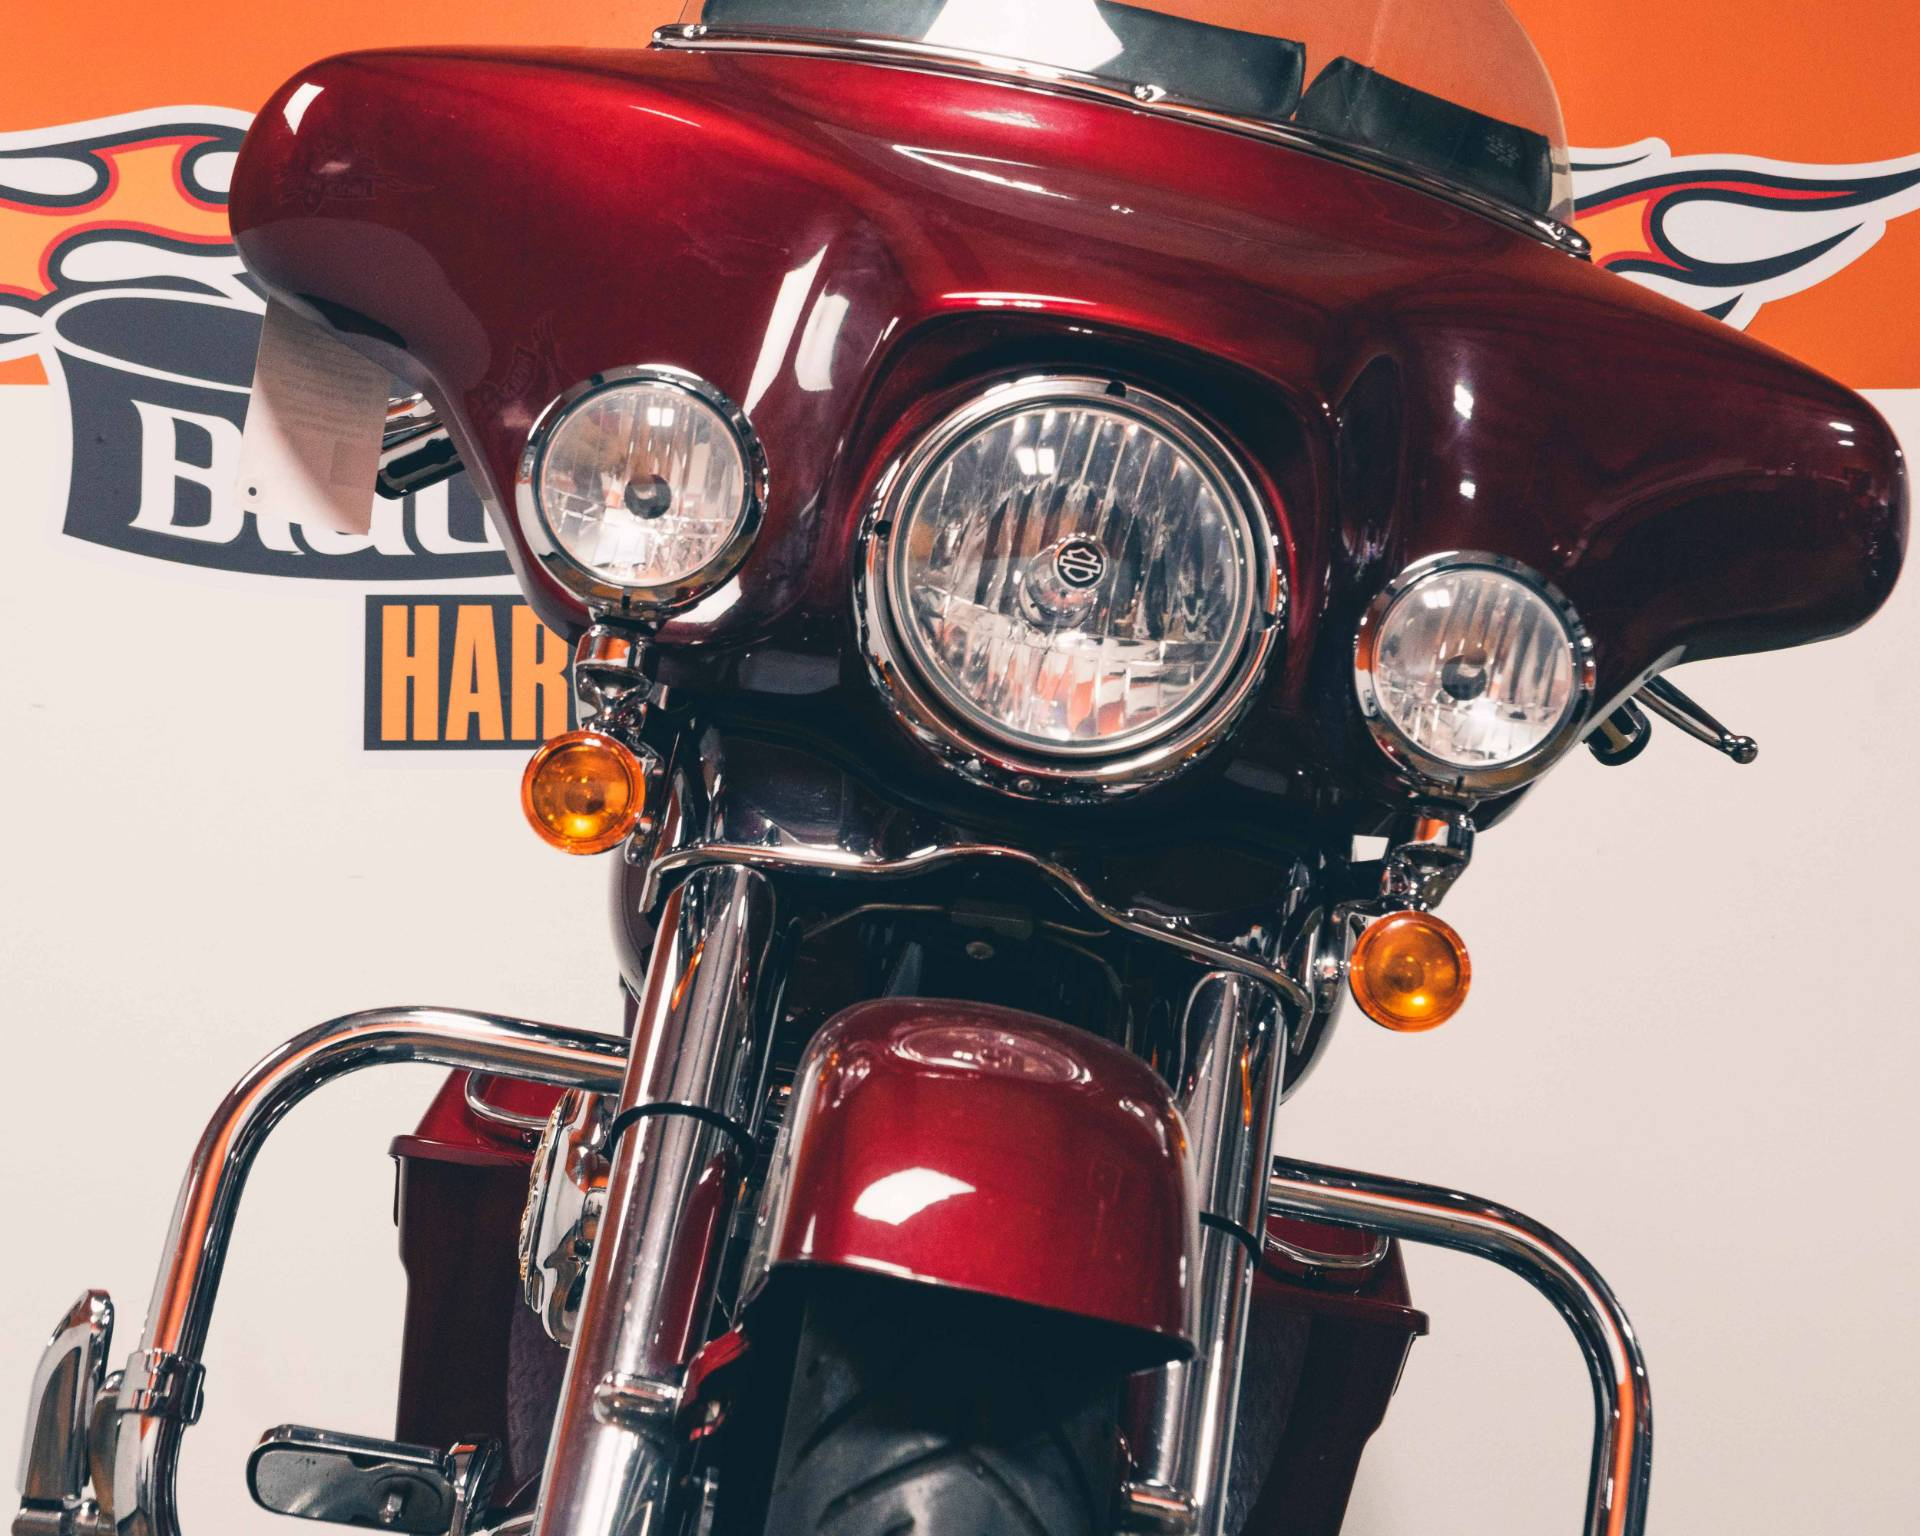 2009 Harley-Davidson Street Glide in Marion, Illinois - Photo 8